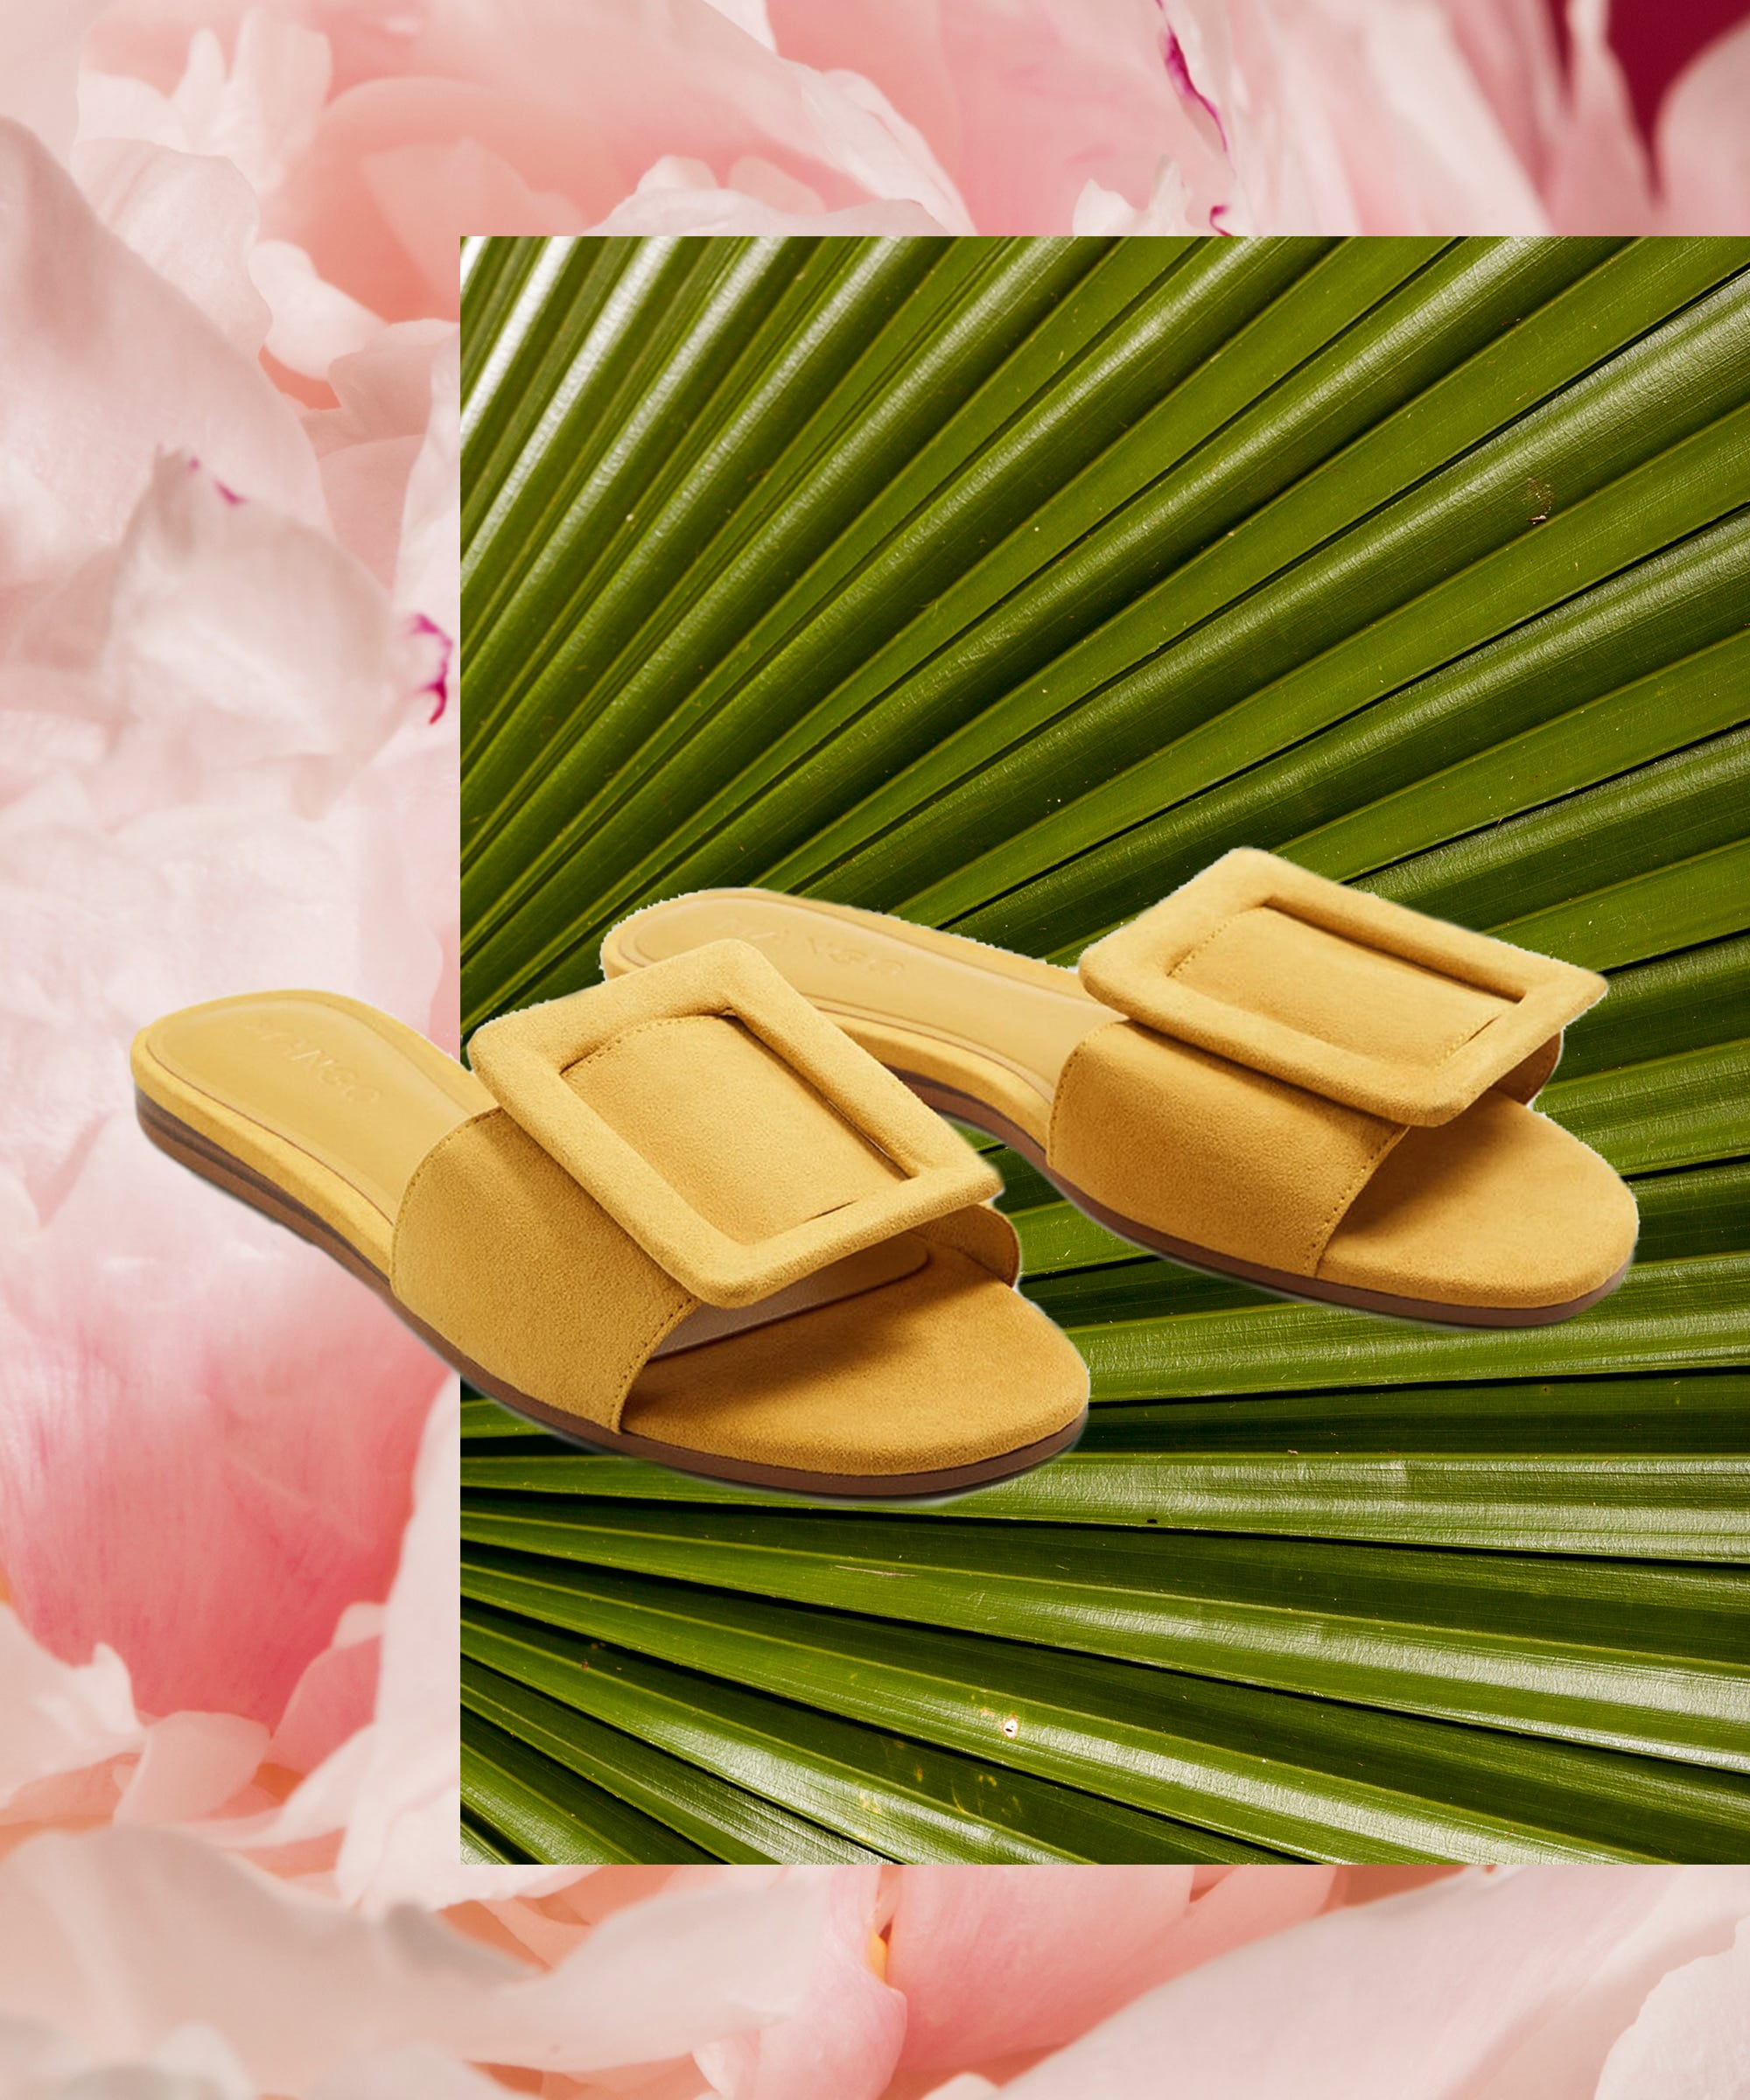 20 Summer Sandals So Cheap, You Can Buy More Than One